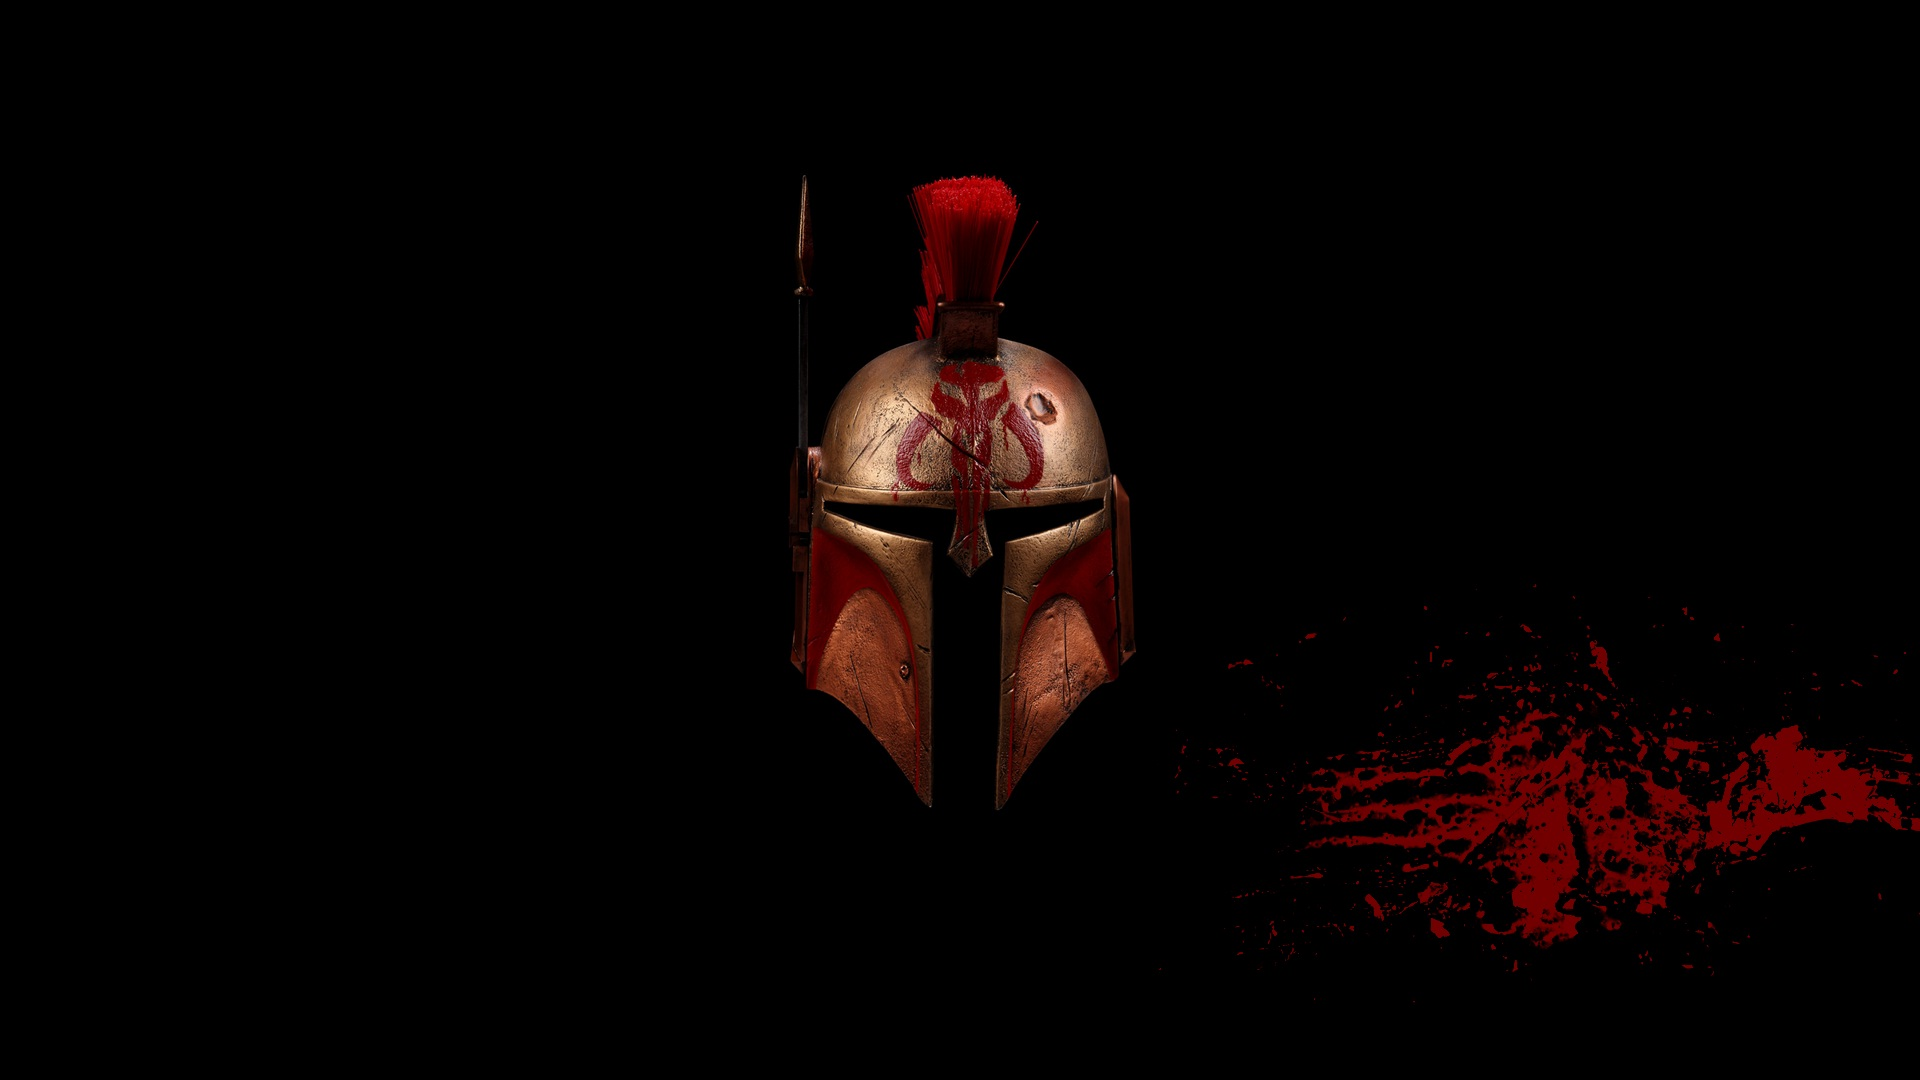 mandalorian wallpaper wallpapersafari